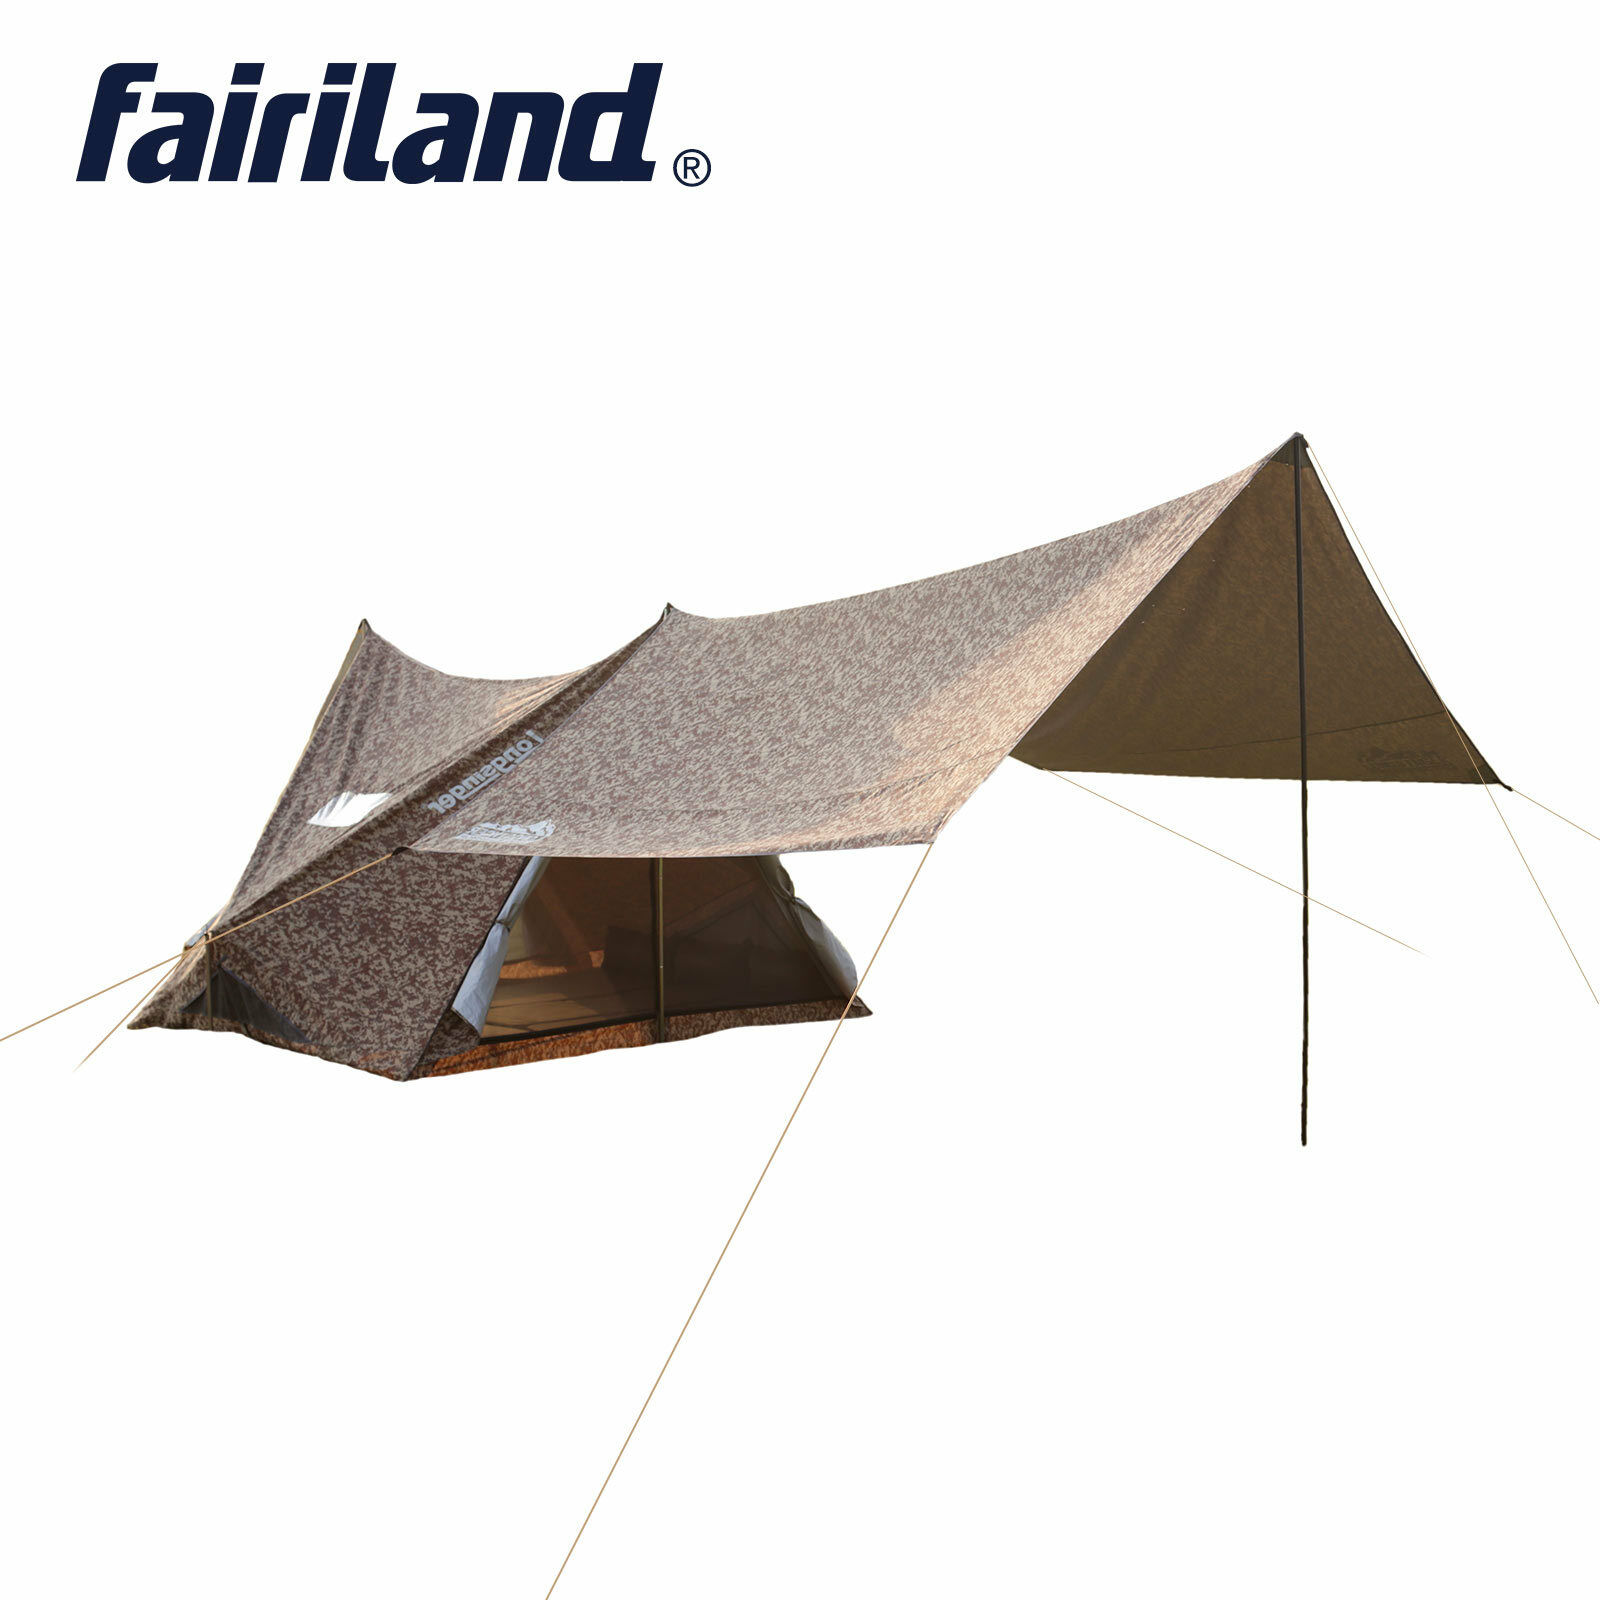 US 110.2x94.5x76.8in 5 person Family camping  tent with large rain fly tent tarp  factory direct sales